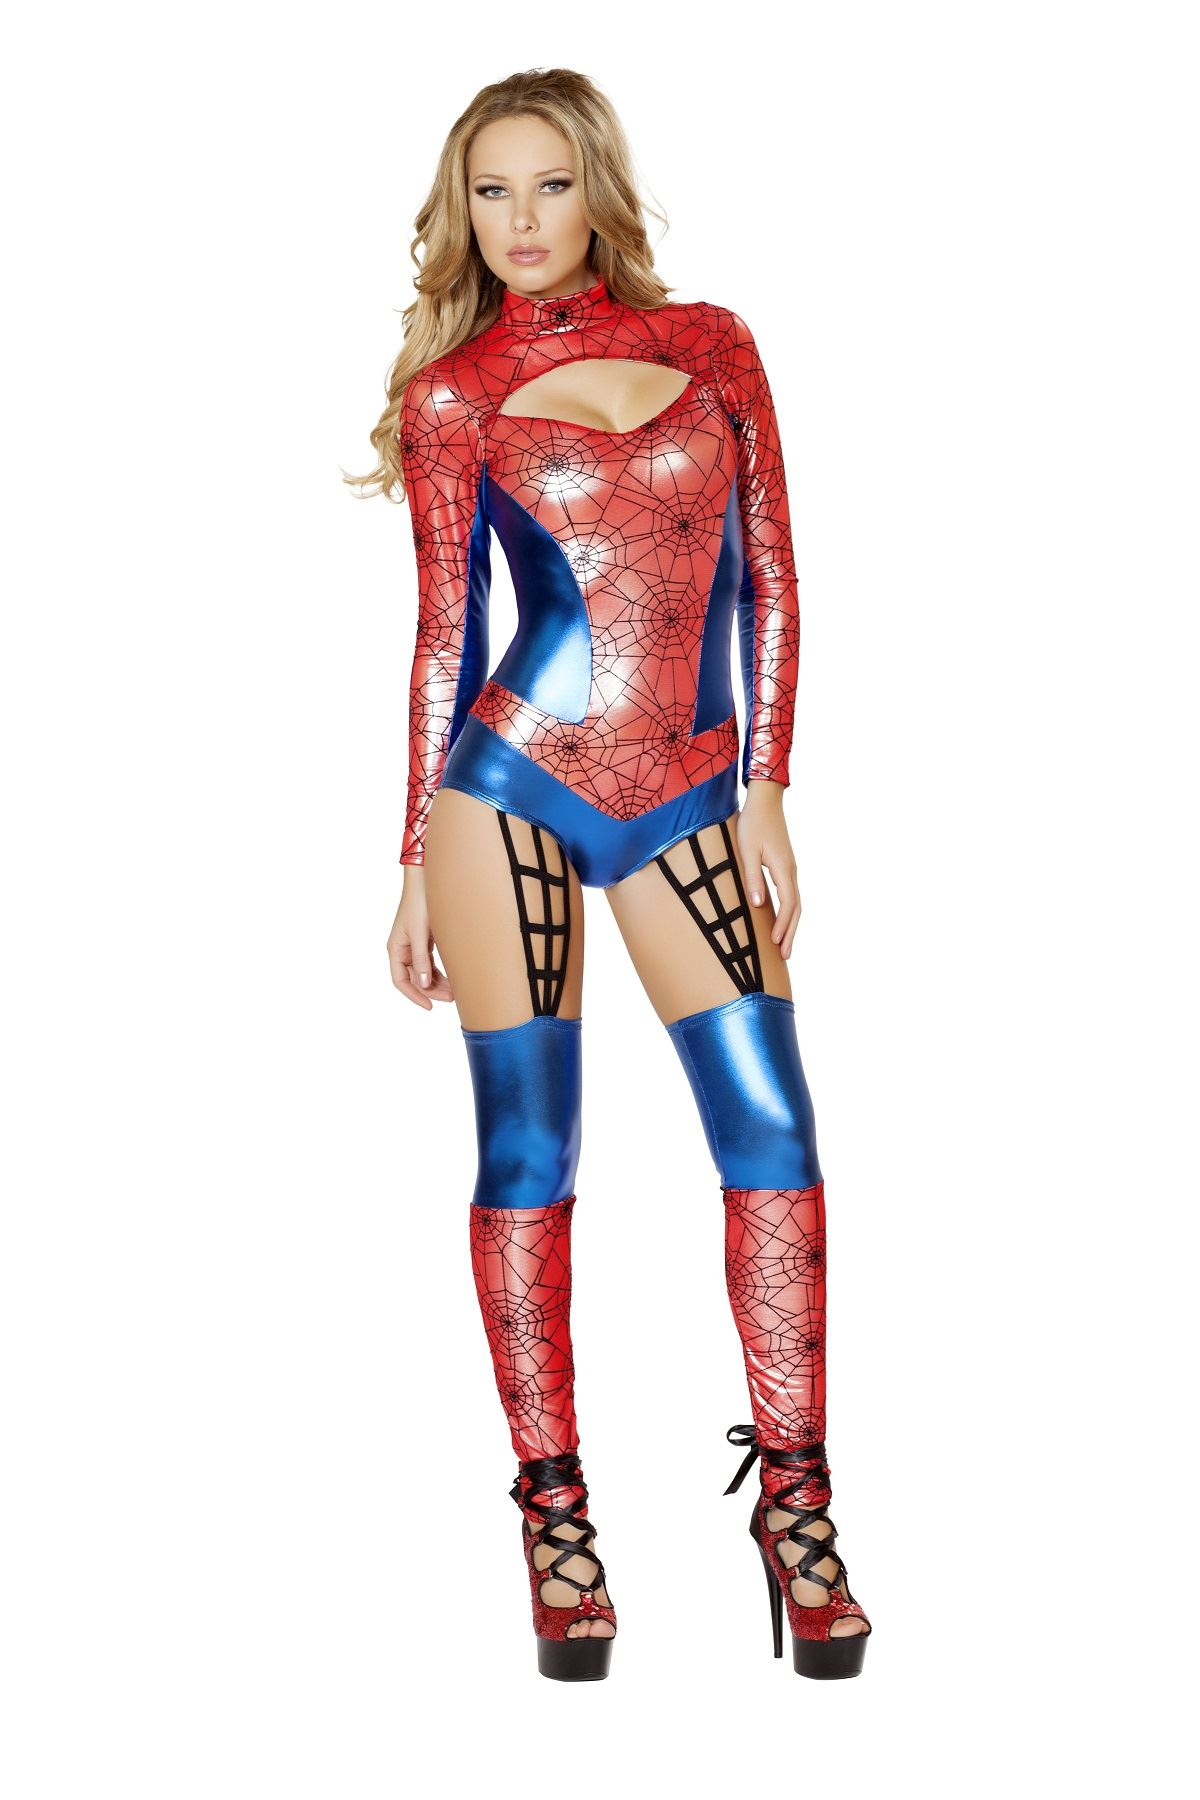 Adult Web Crawler Superhero Woman Costume ...  sc 1 st  The Costume Land & Adult Web Crawler Superhero Woman Costume | $104.99 | The Costume Land